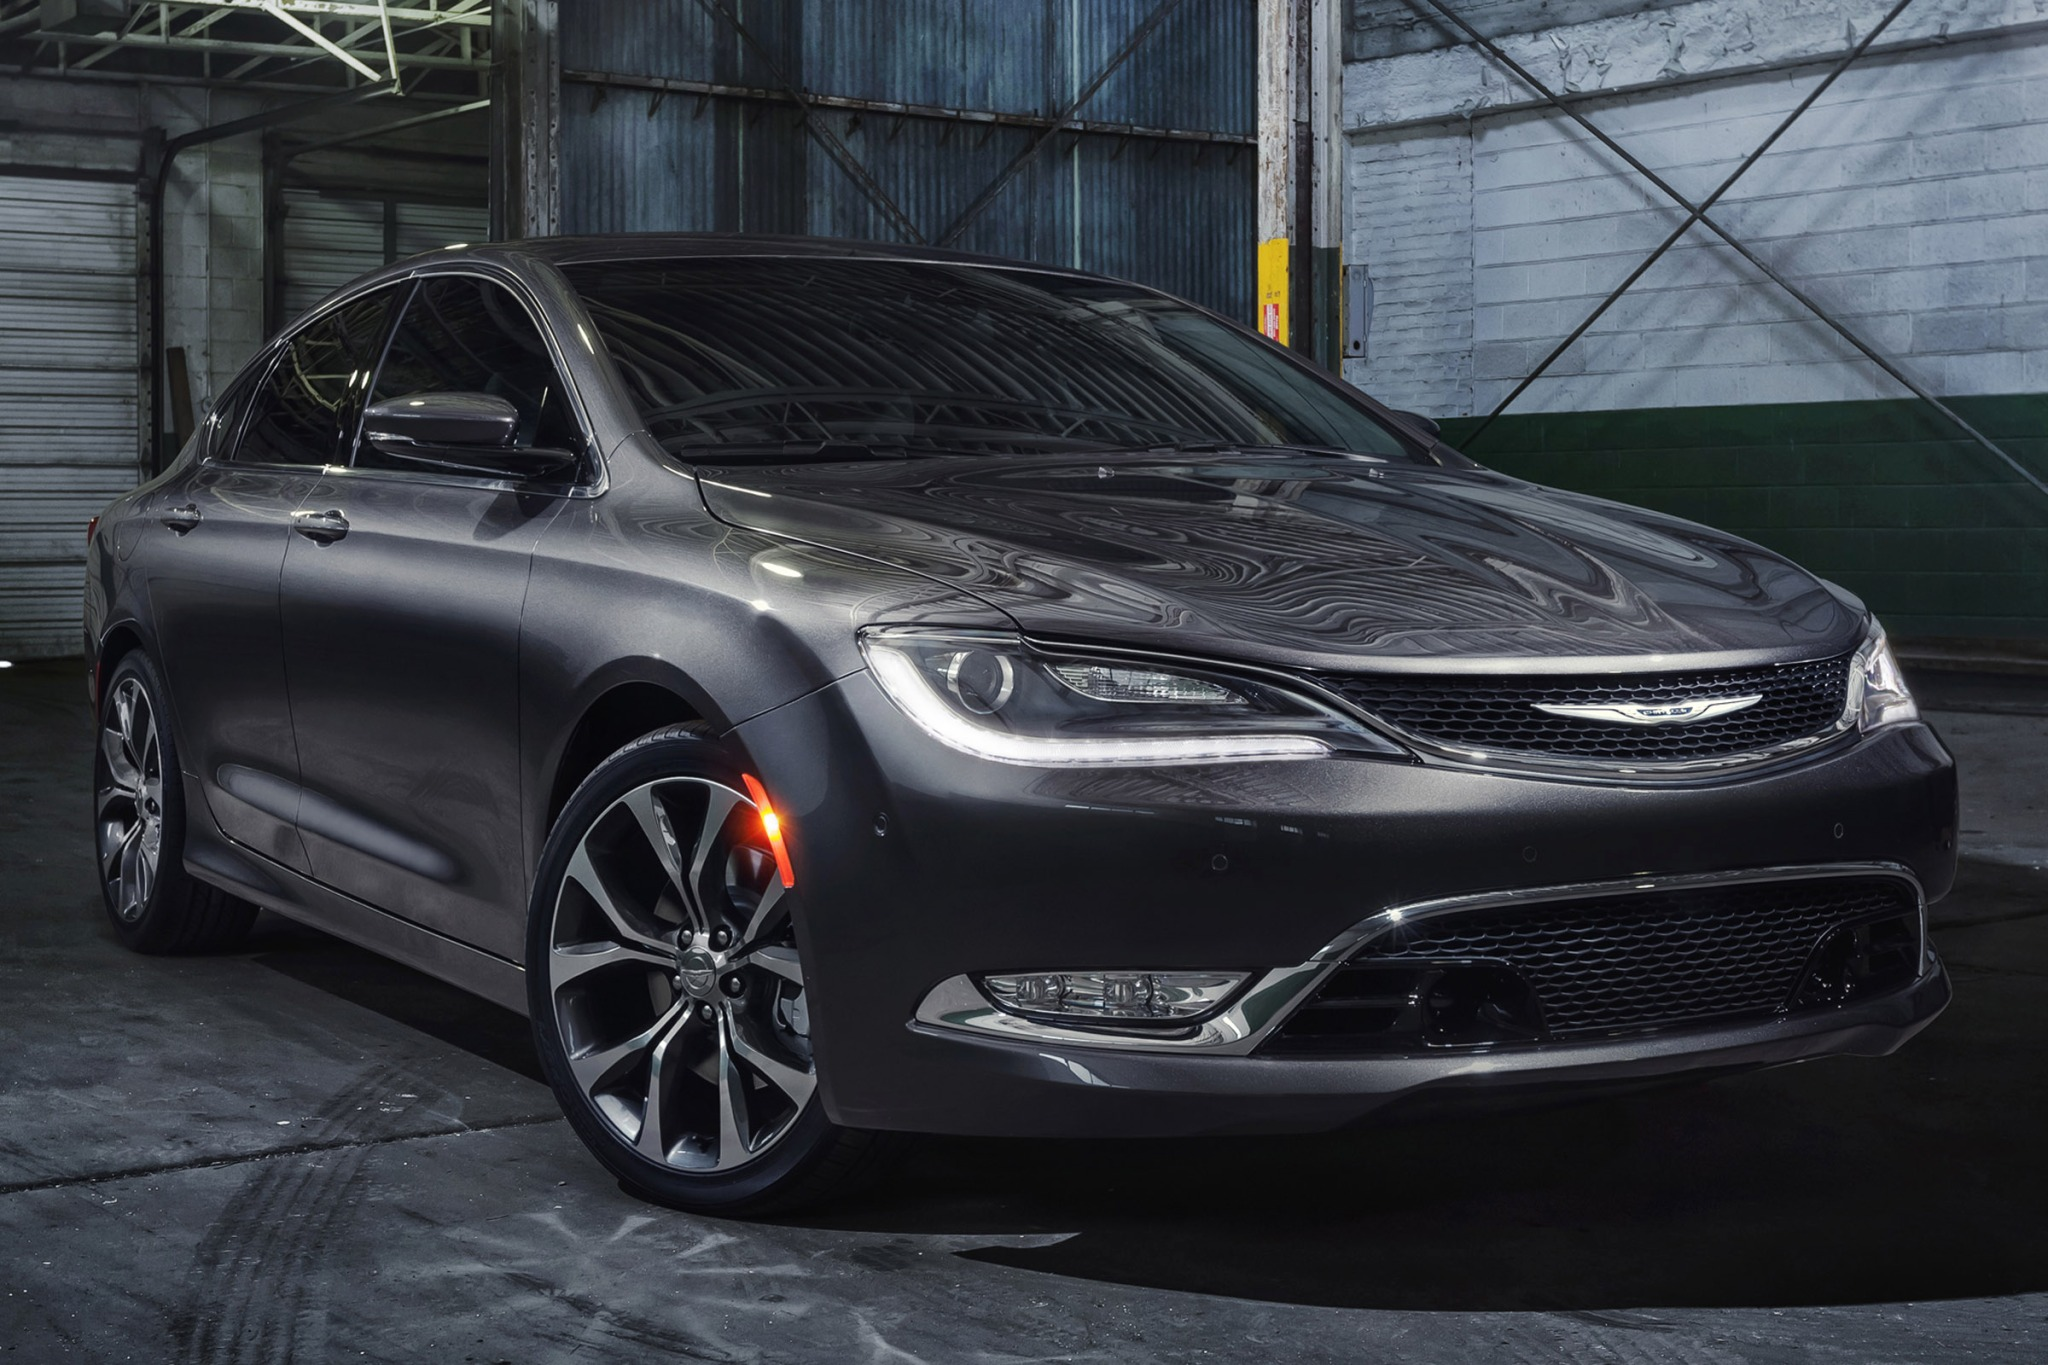 2015 chrysler 200 sedan c fq oem 2 2048